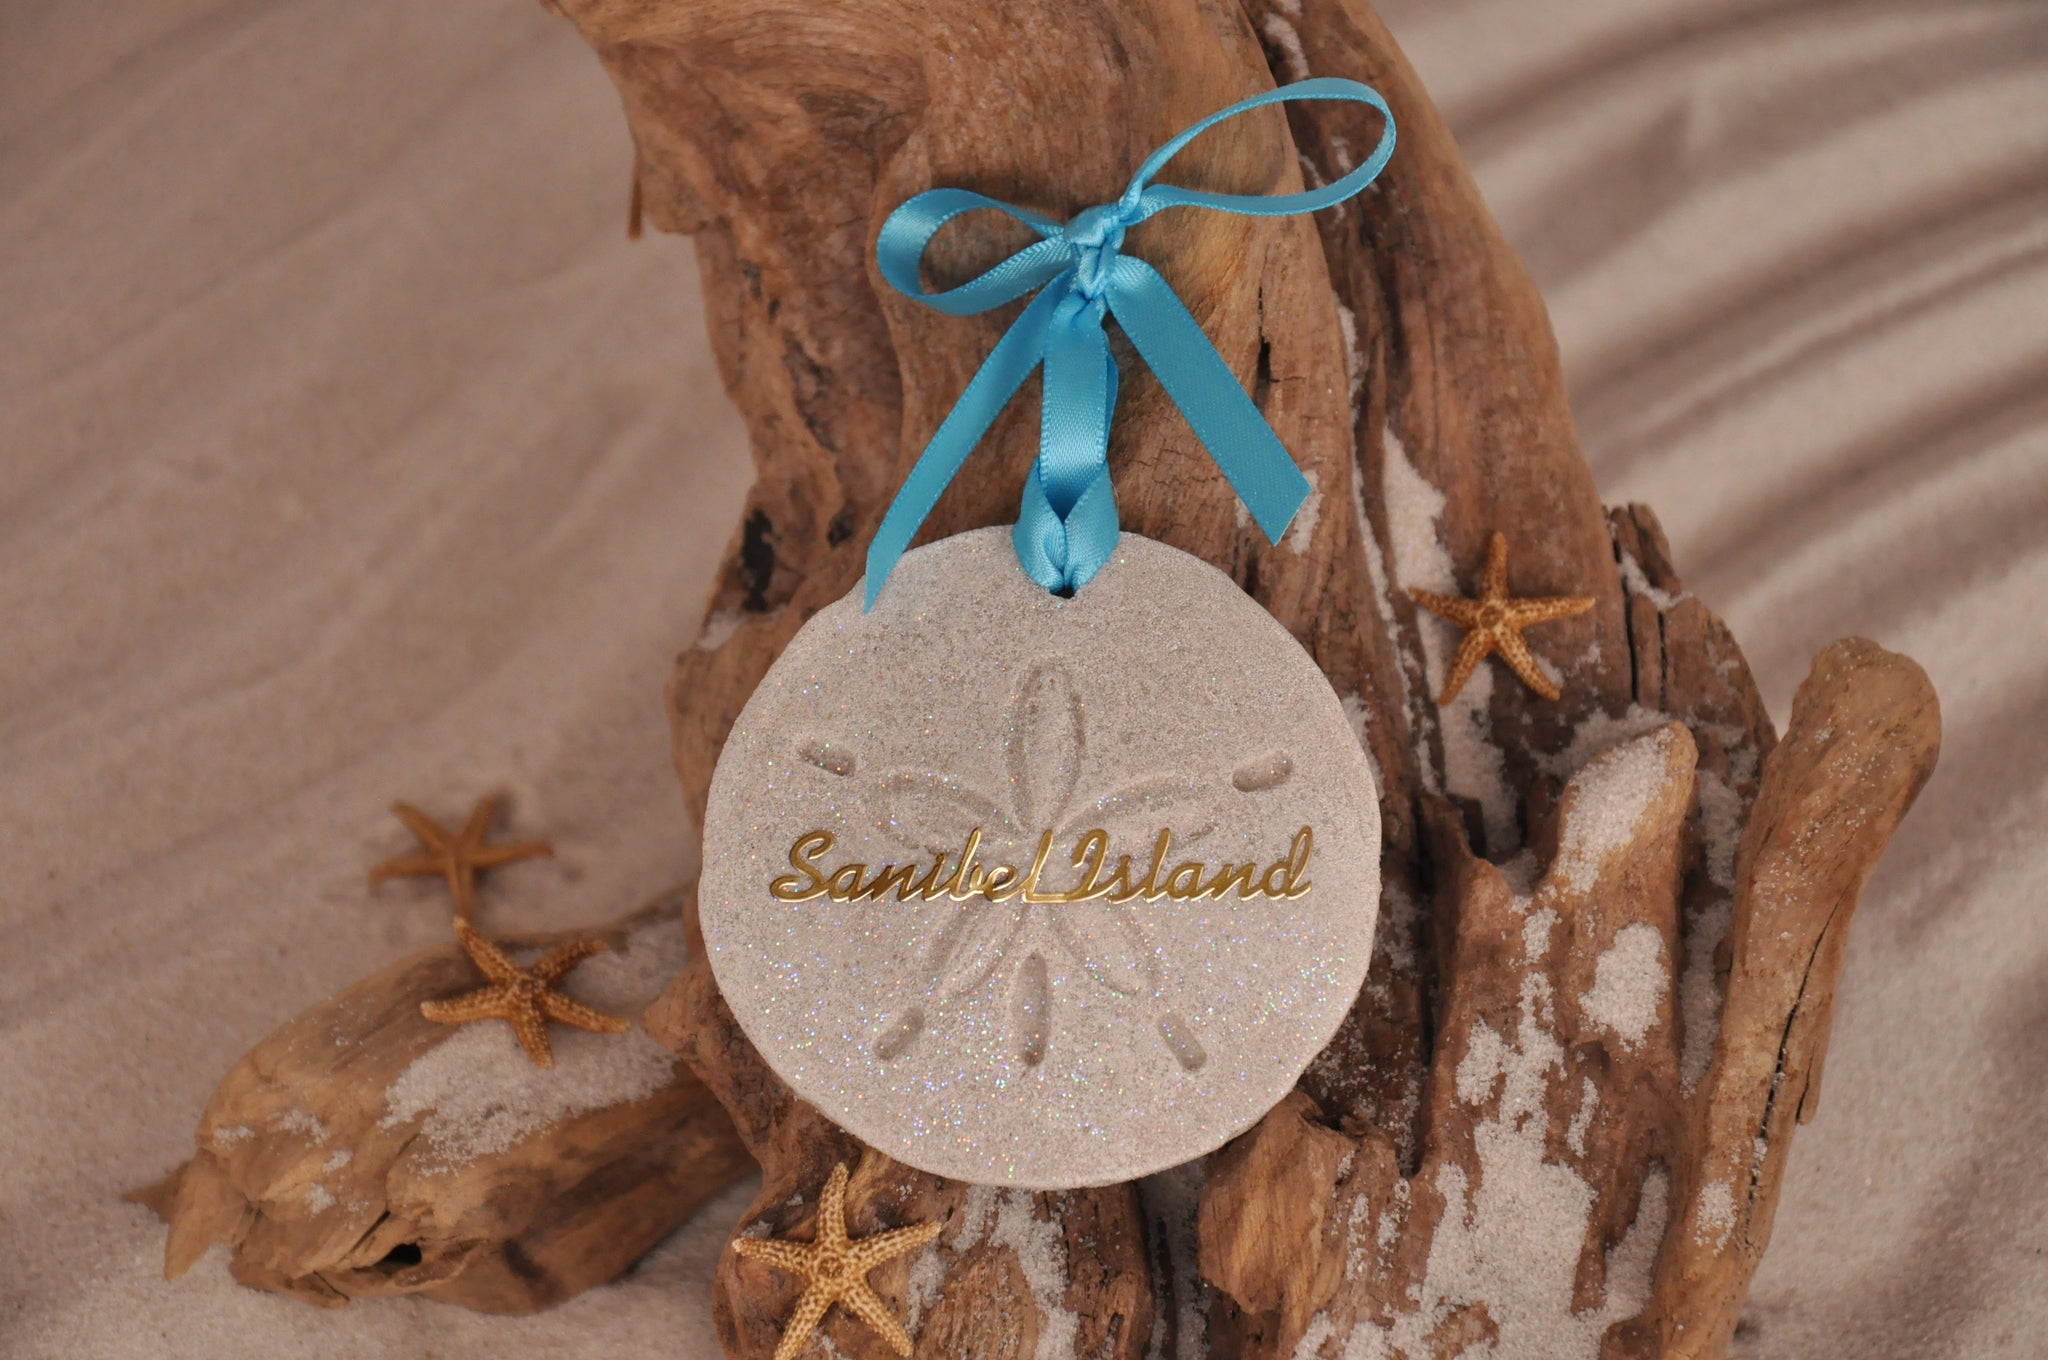 Sanibel Island Sand Dollar Ornament